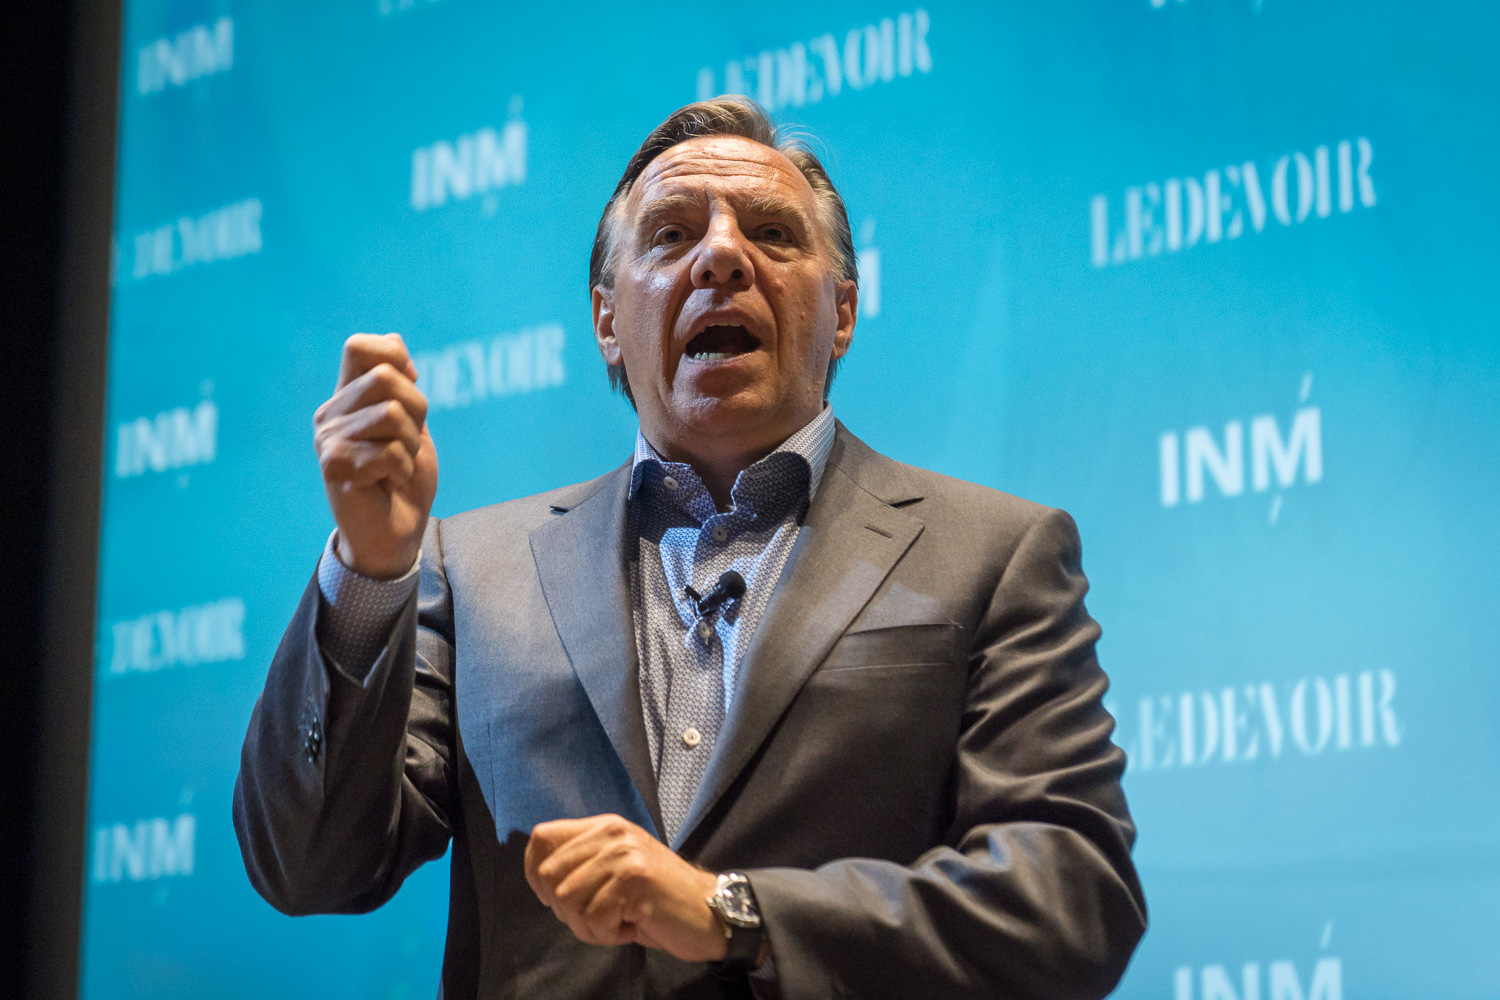 François Legault, leader of the CAQ, at a Quebec election event on August 17